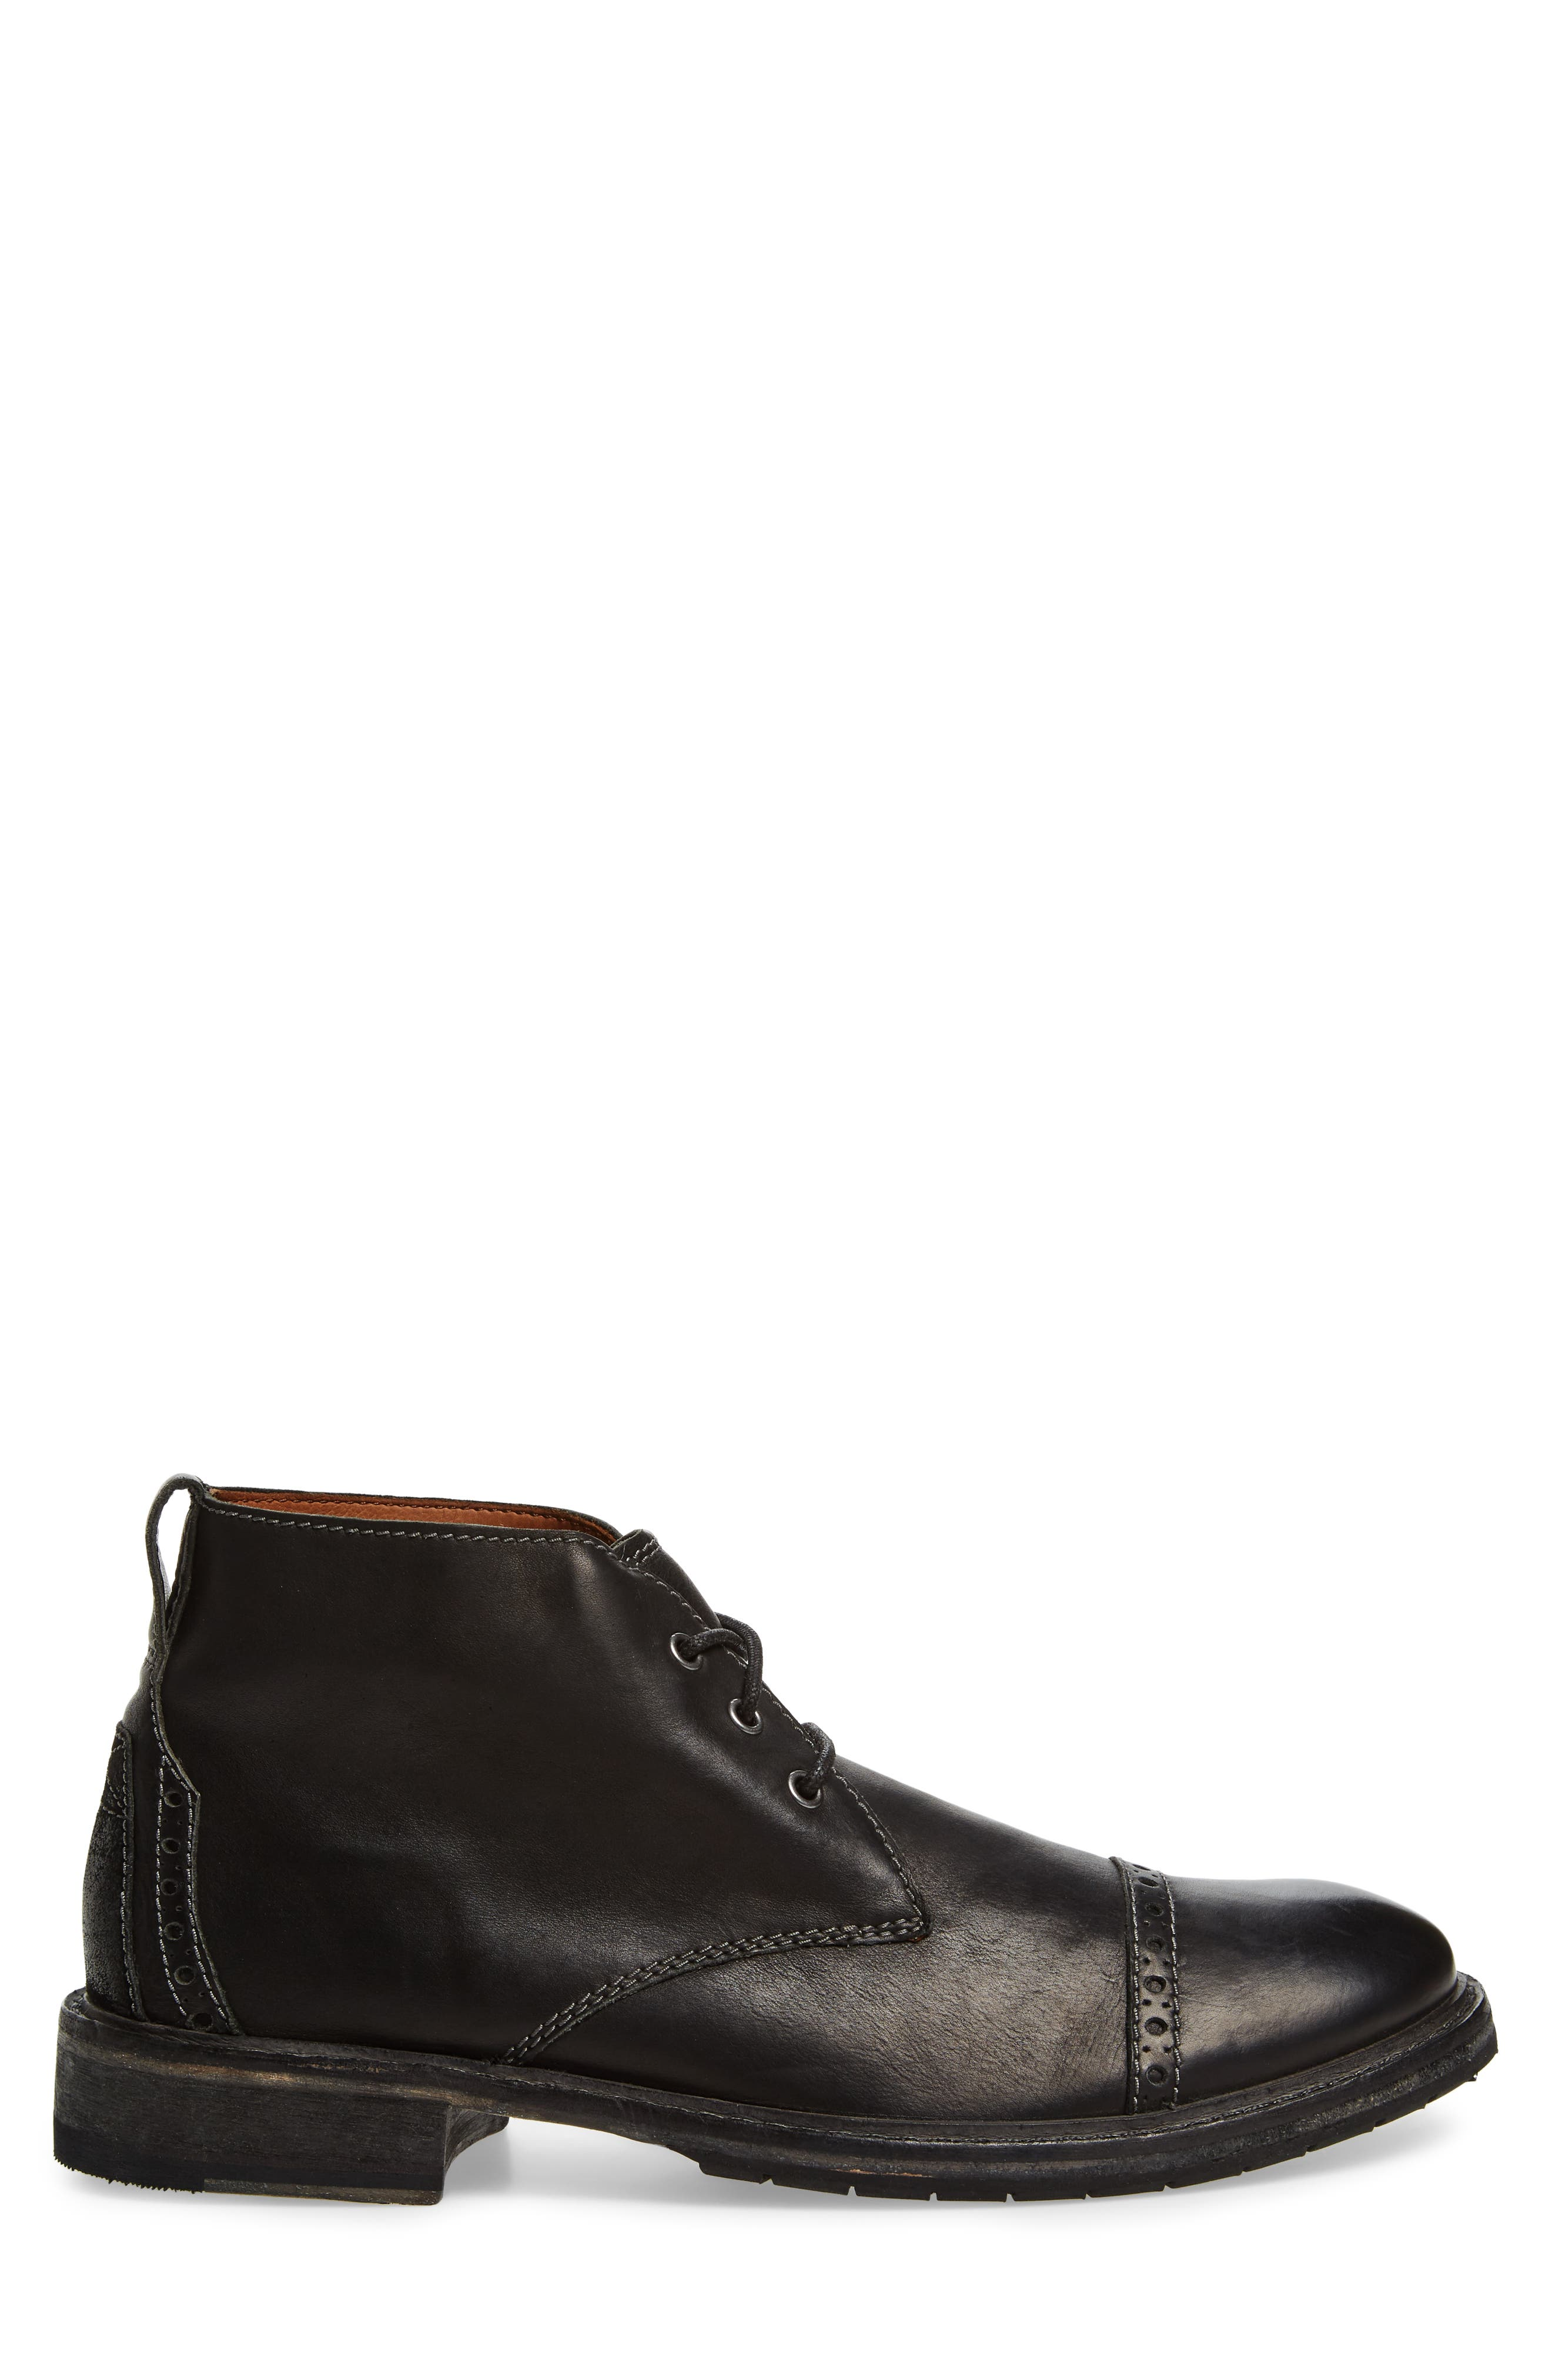 Clarkdale Water Resistant Chukka Boot,                             Alternate thumbnail 3, color,                             003